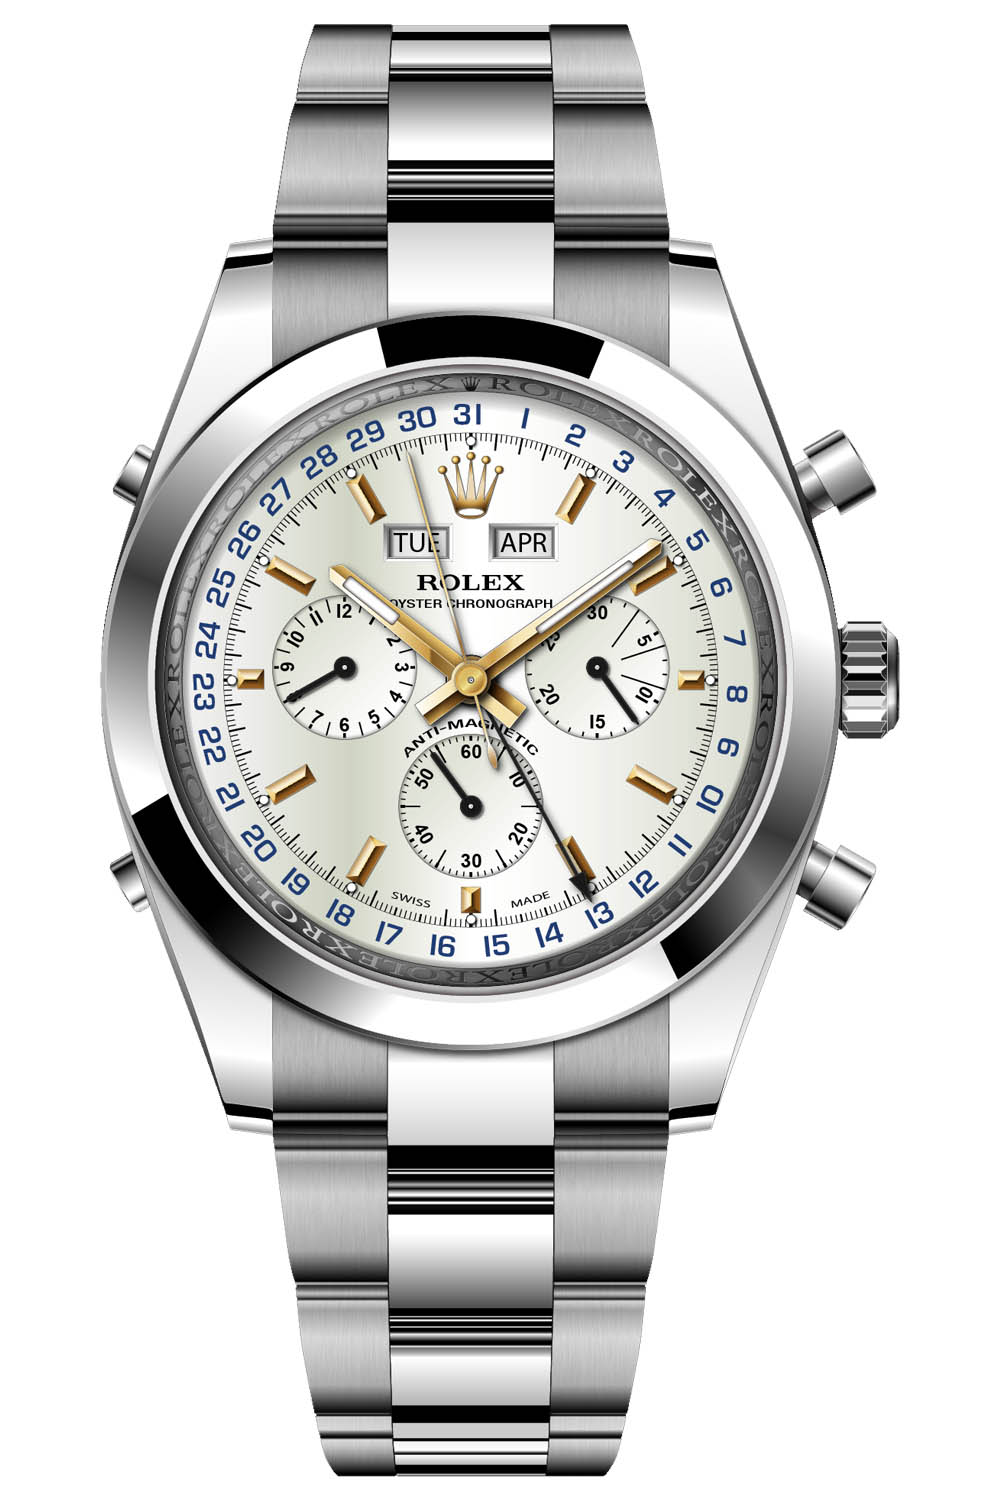 Rolex Predictions 2021 - Return of the Rolex Dato Compax Jean Claude Killy